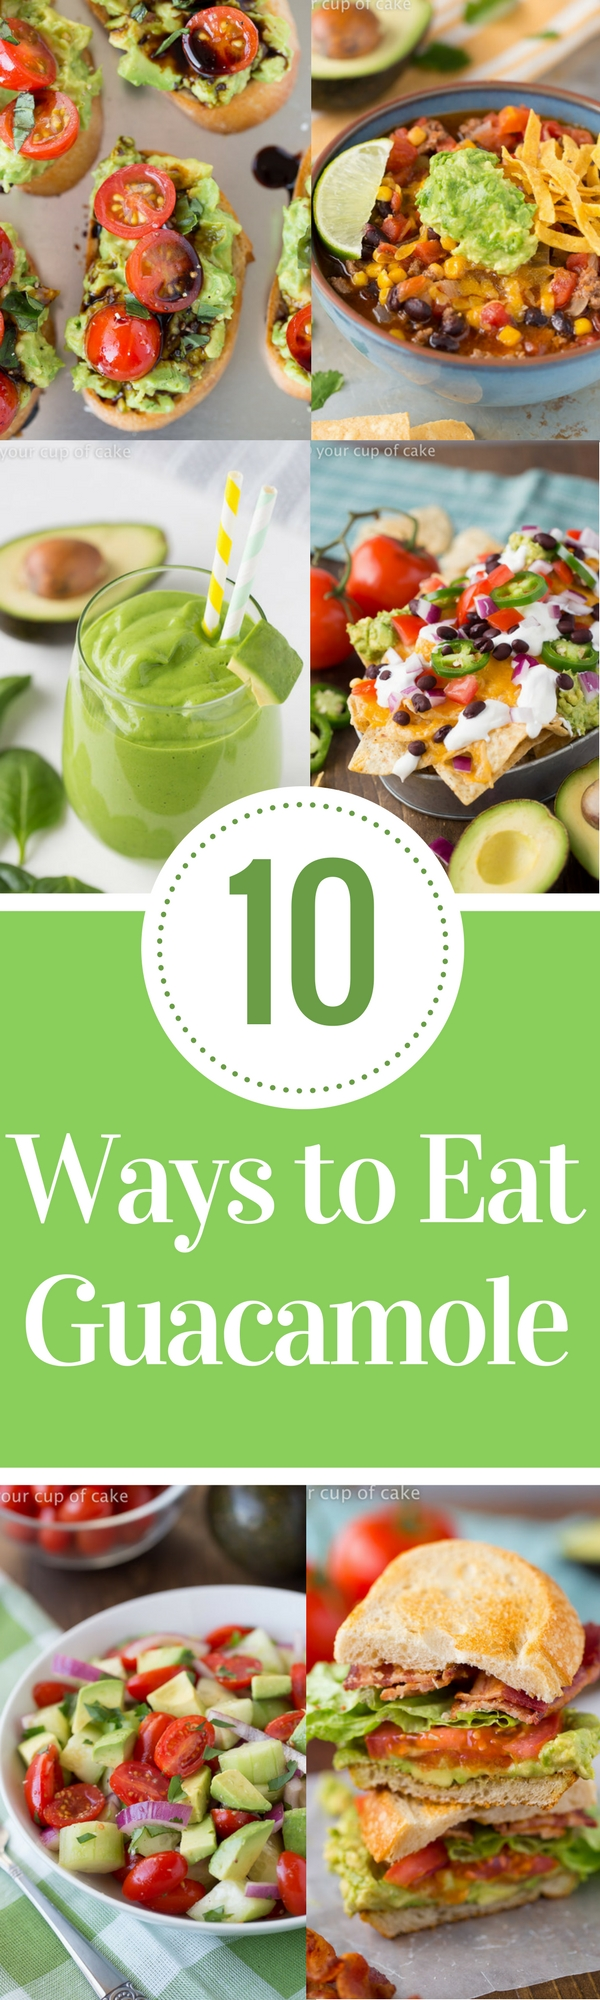 10 Ways to Eat Guacamole